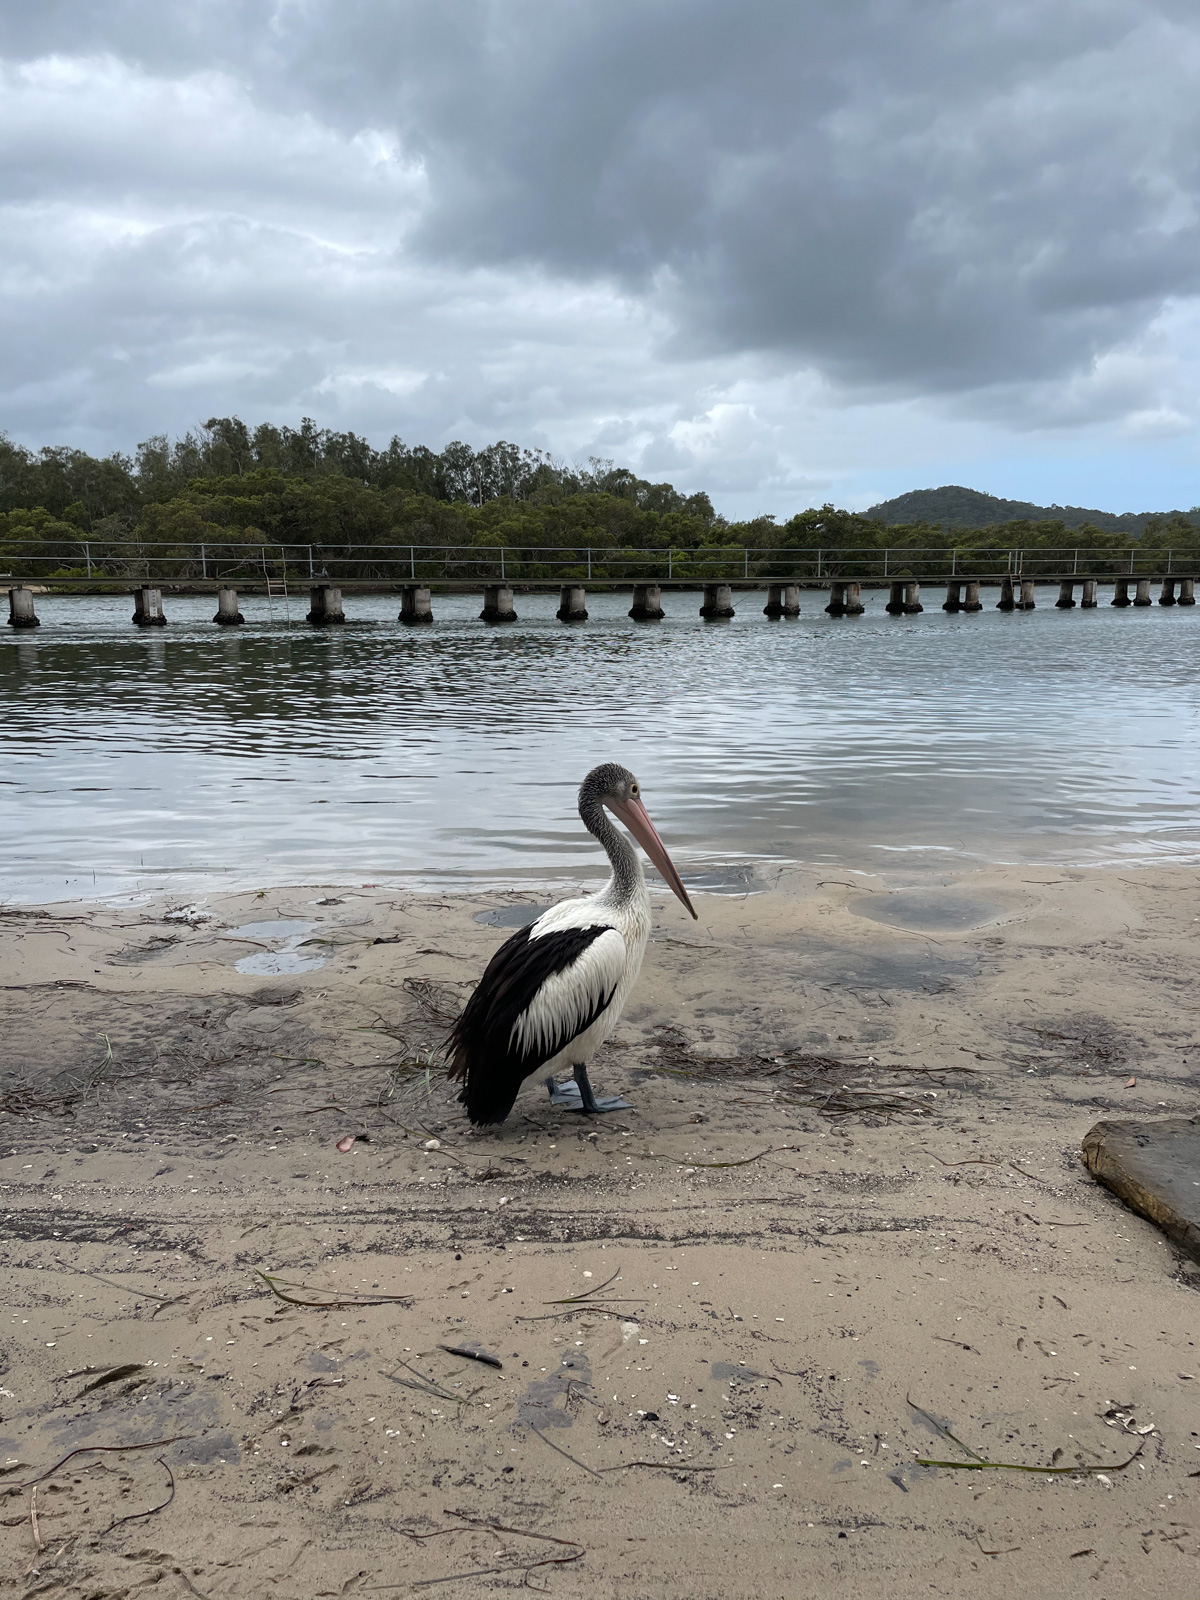 A pelican perched on dirty sand by a big lake. Over the lake is a raised boardwalk.